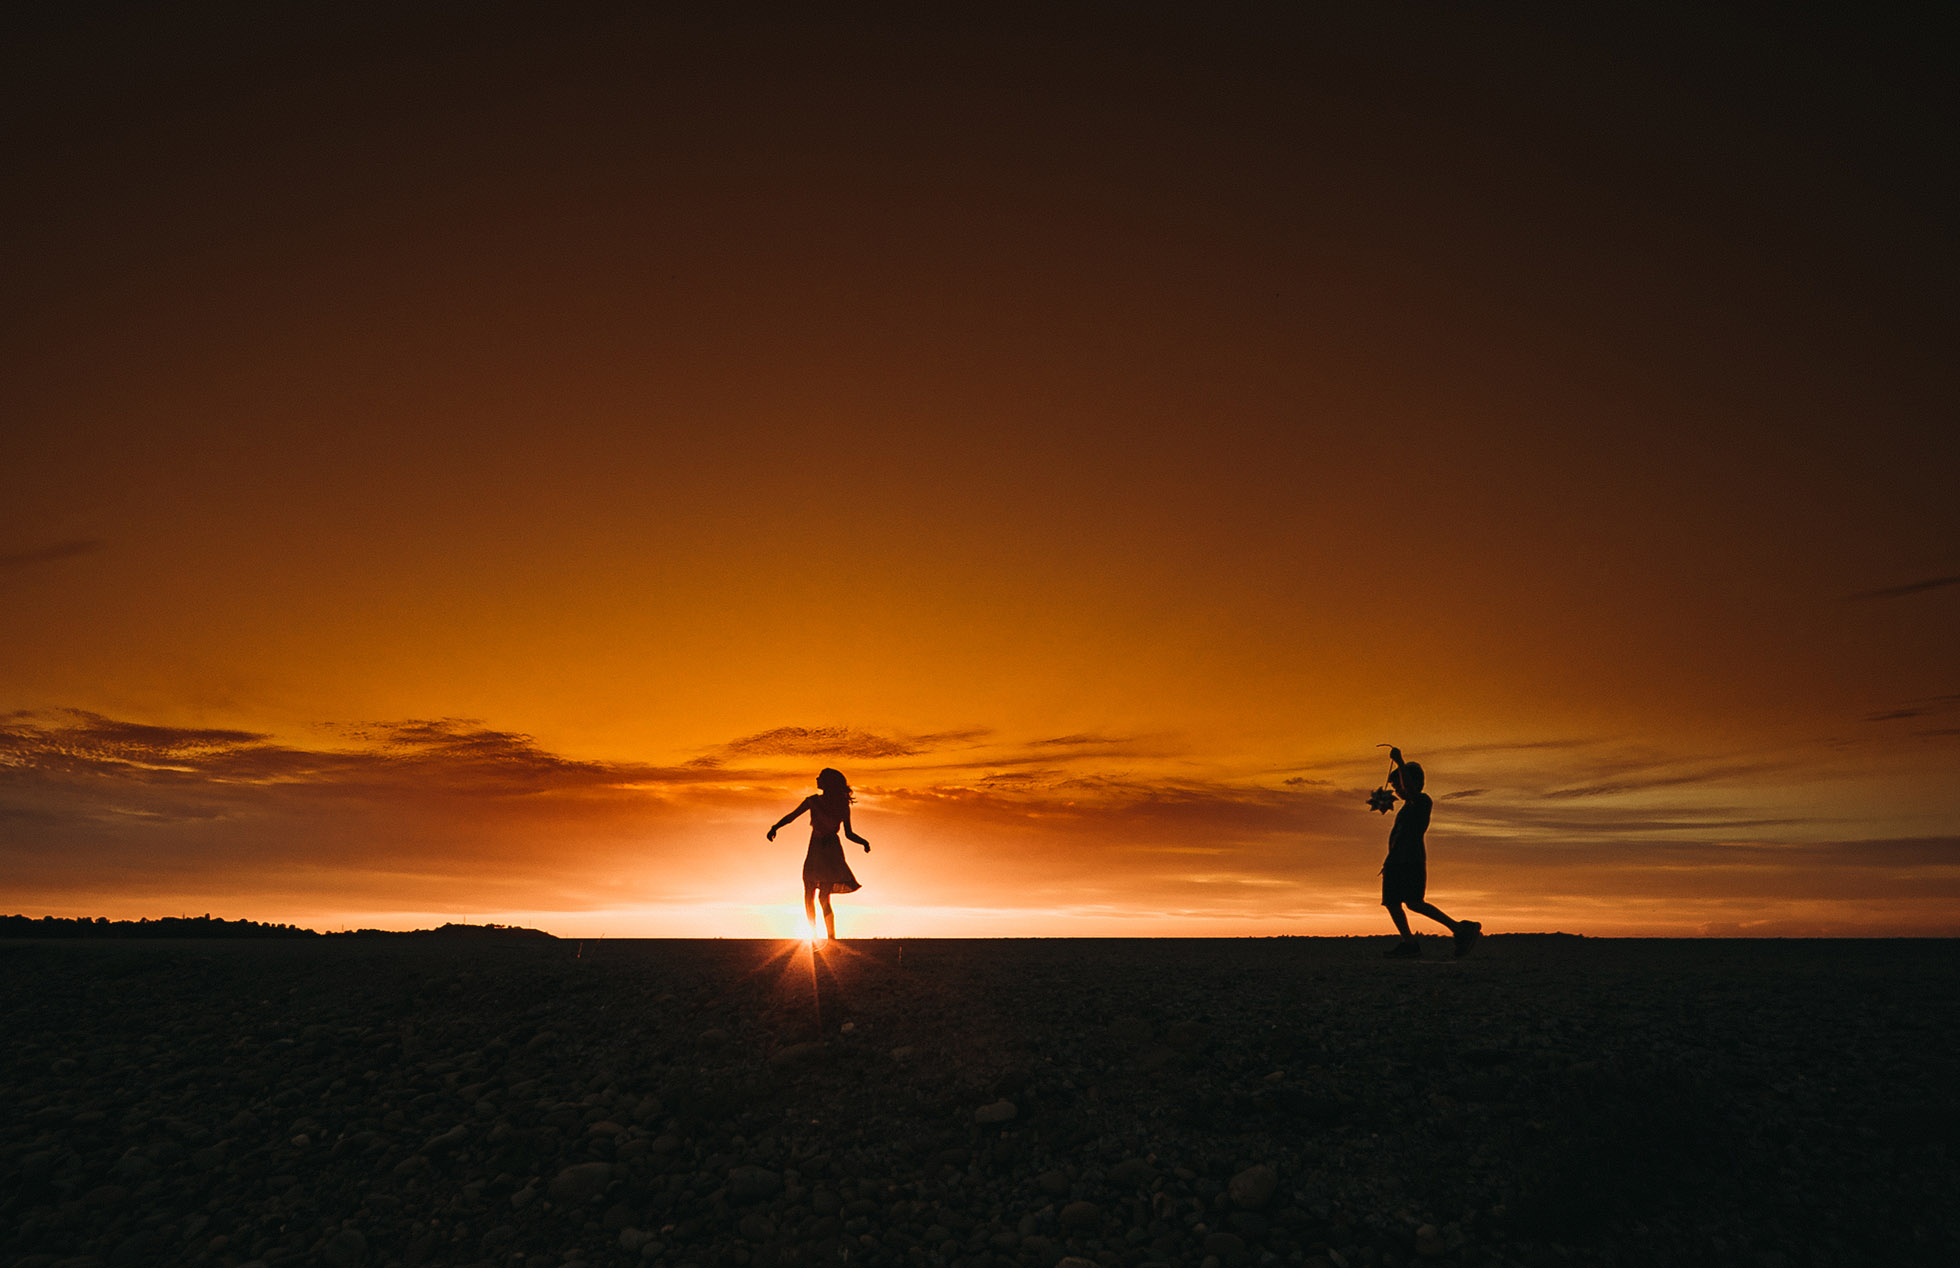 silhouettes of children playing at sunset by jyo bhamidipati